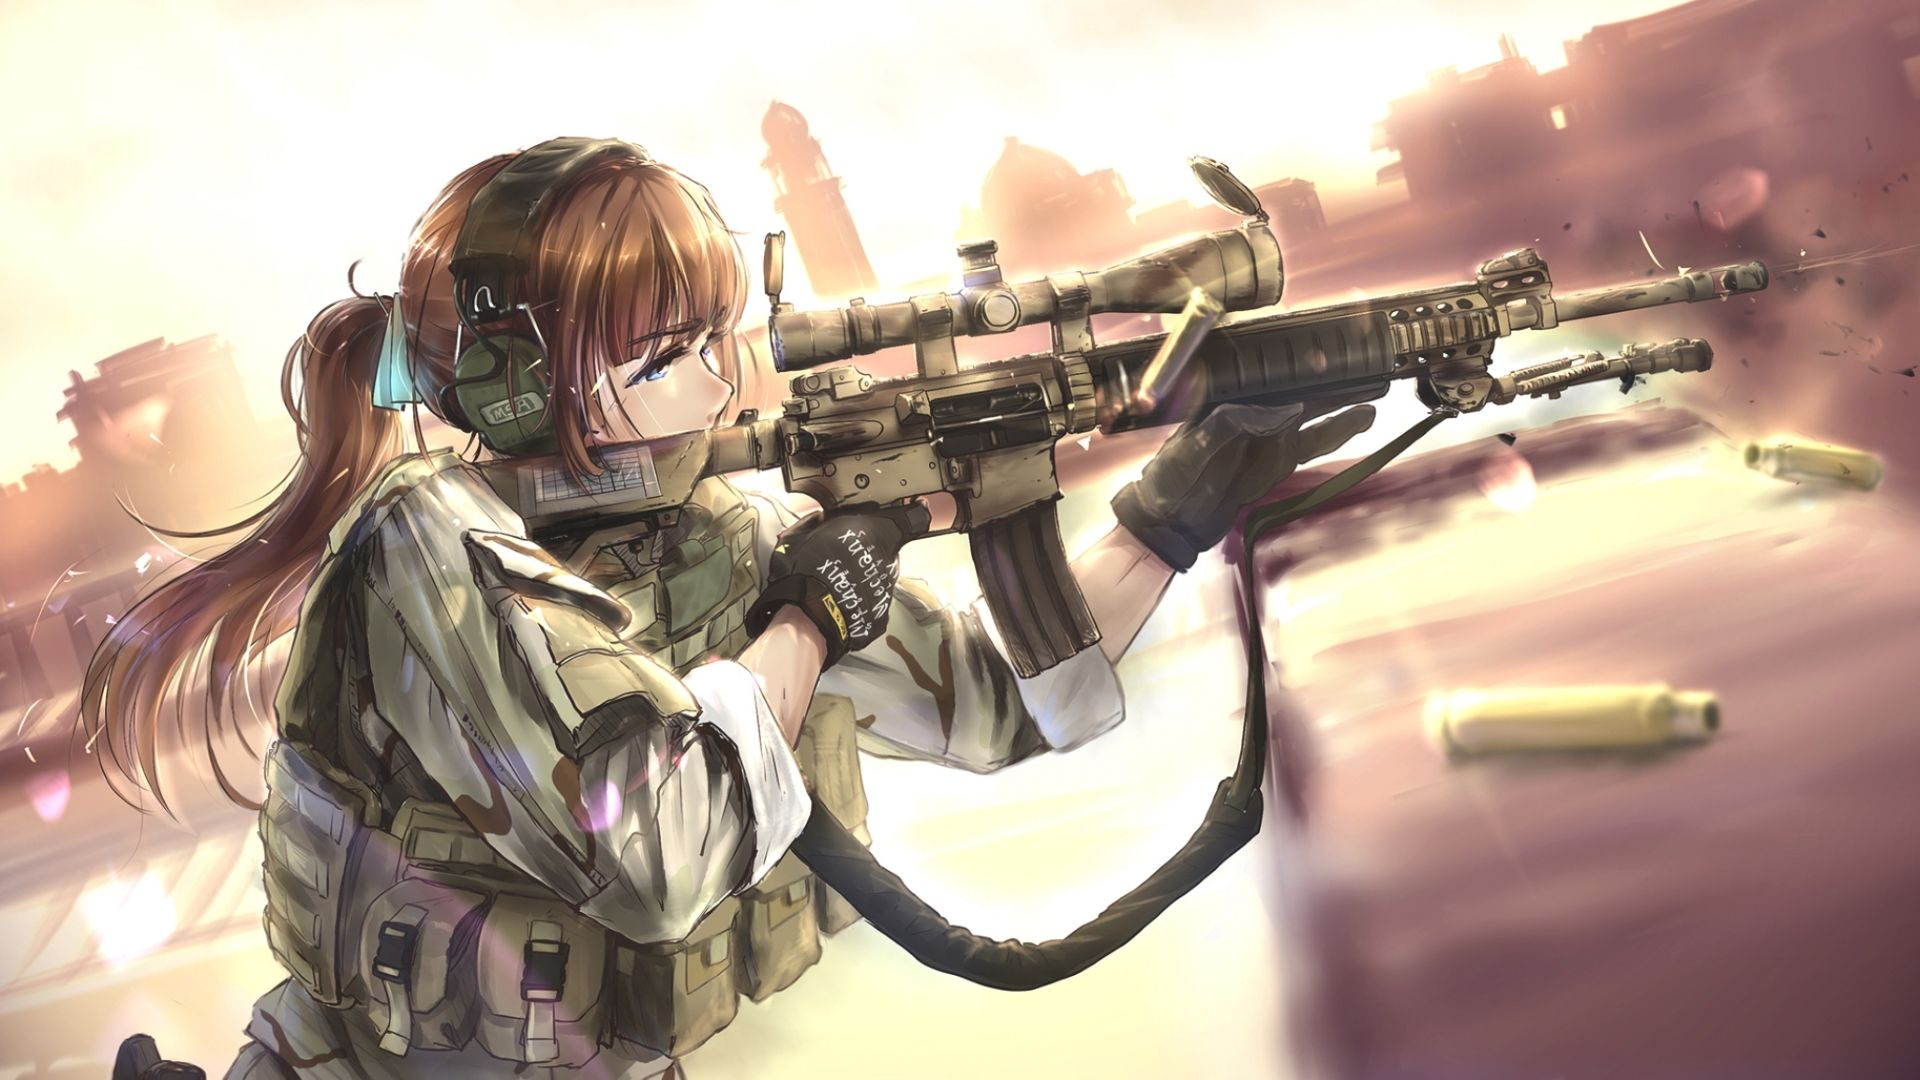 1920x1080 anime girls with guns wallpaper Group with 58 items